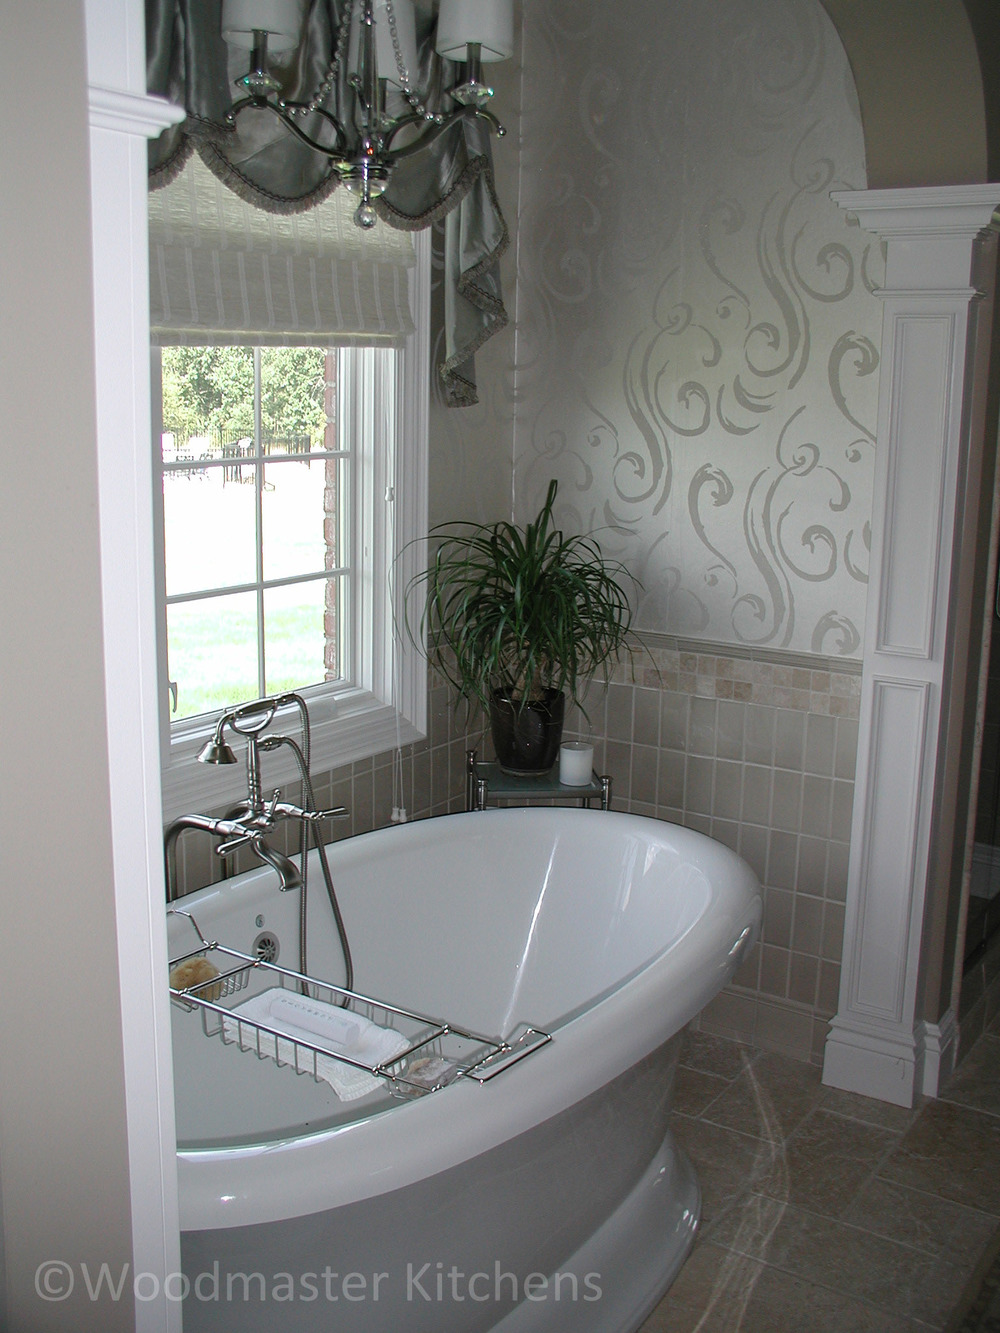 Freestanding tub design with a pedestal base.